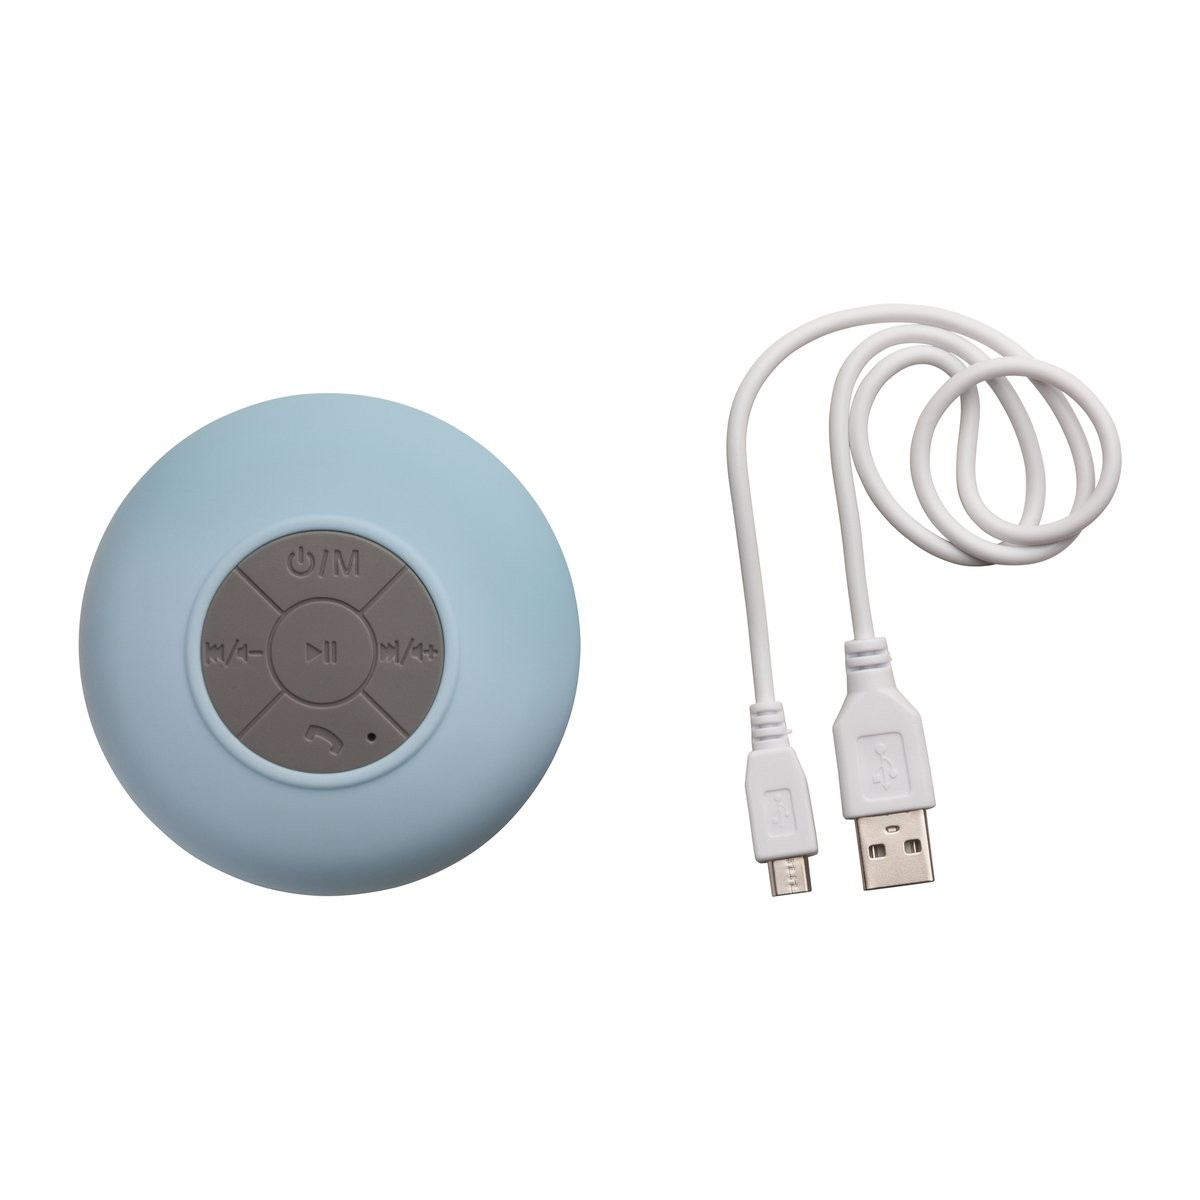 Bluetooth® Duschlautsprecher mit Radio REFLECTS-AVIGNON LIGHT BLUE, Ansicht 6